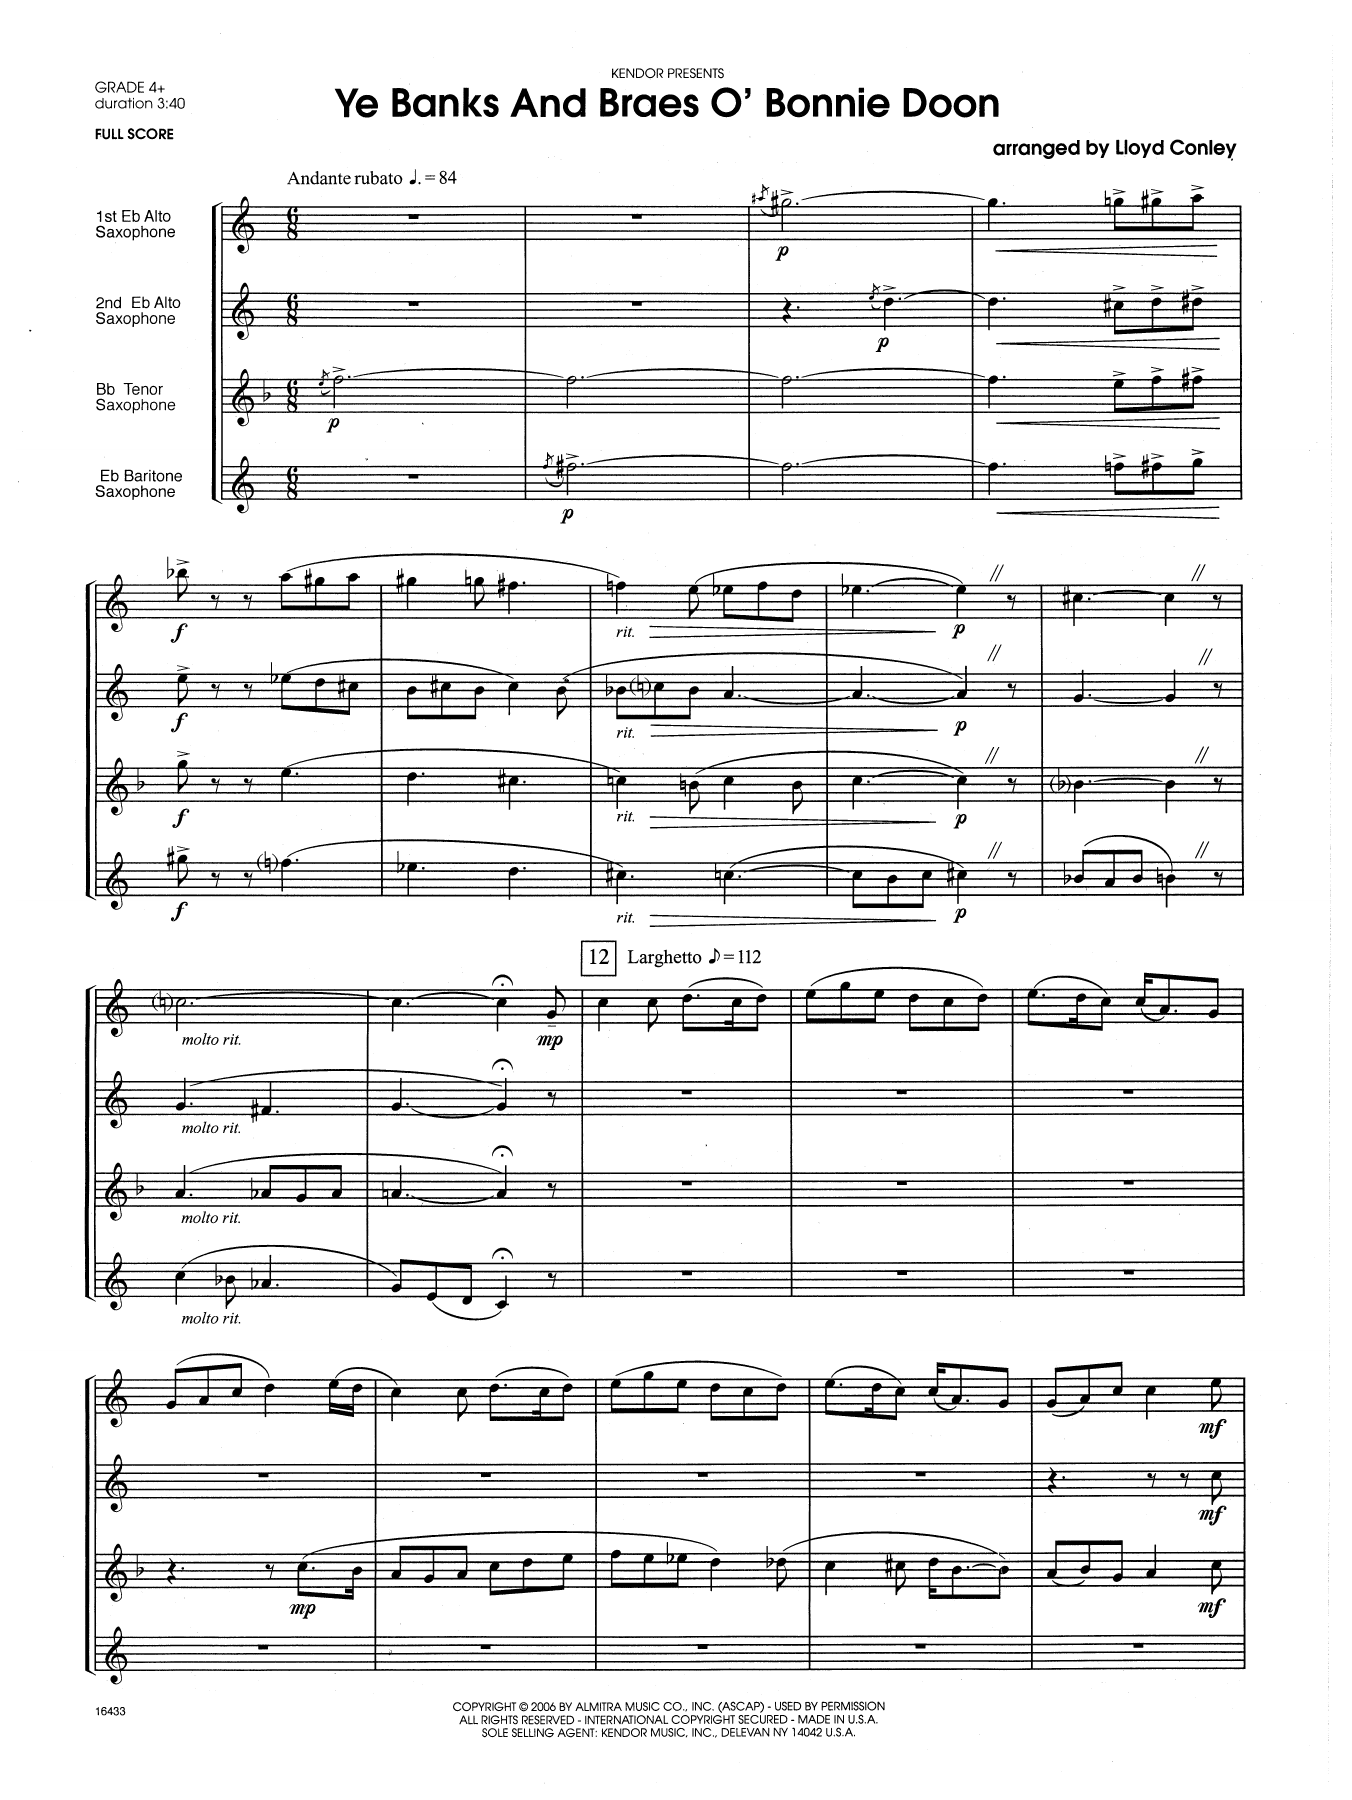 Ye Banks and Braes o' Bonnie Doon (COMPLETE) sheet music for saxophone quartet by Lloyd Conley. Score Image Preview.